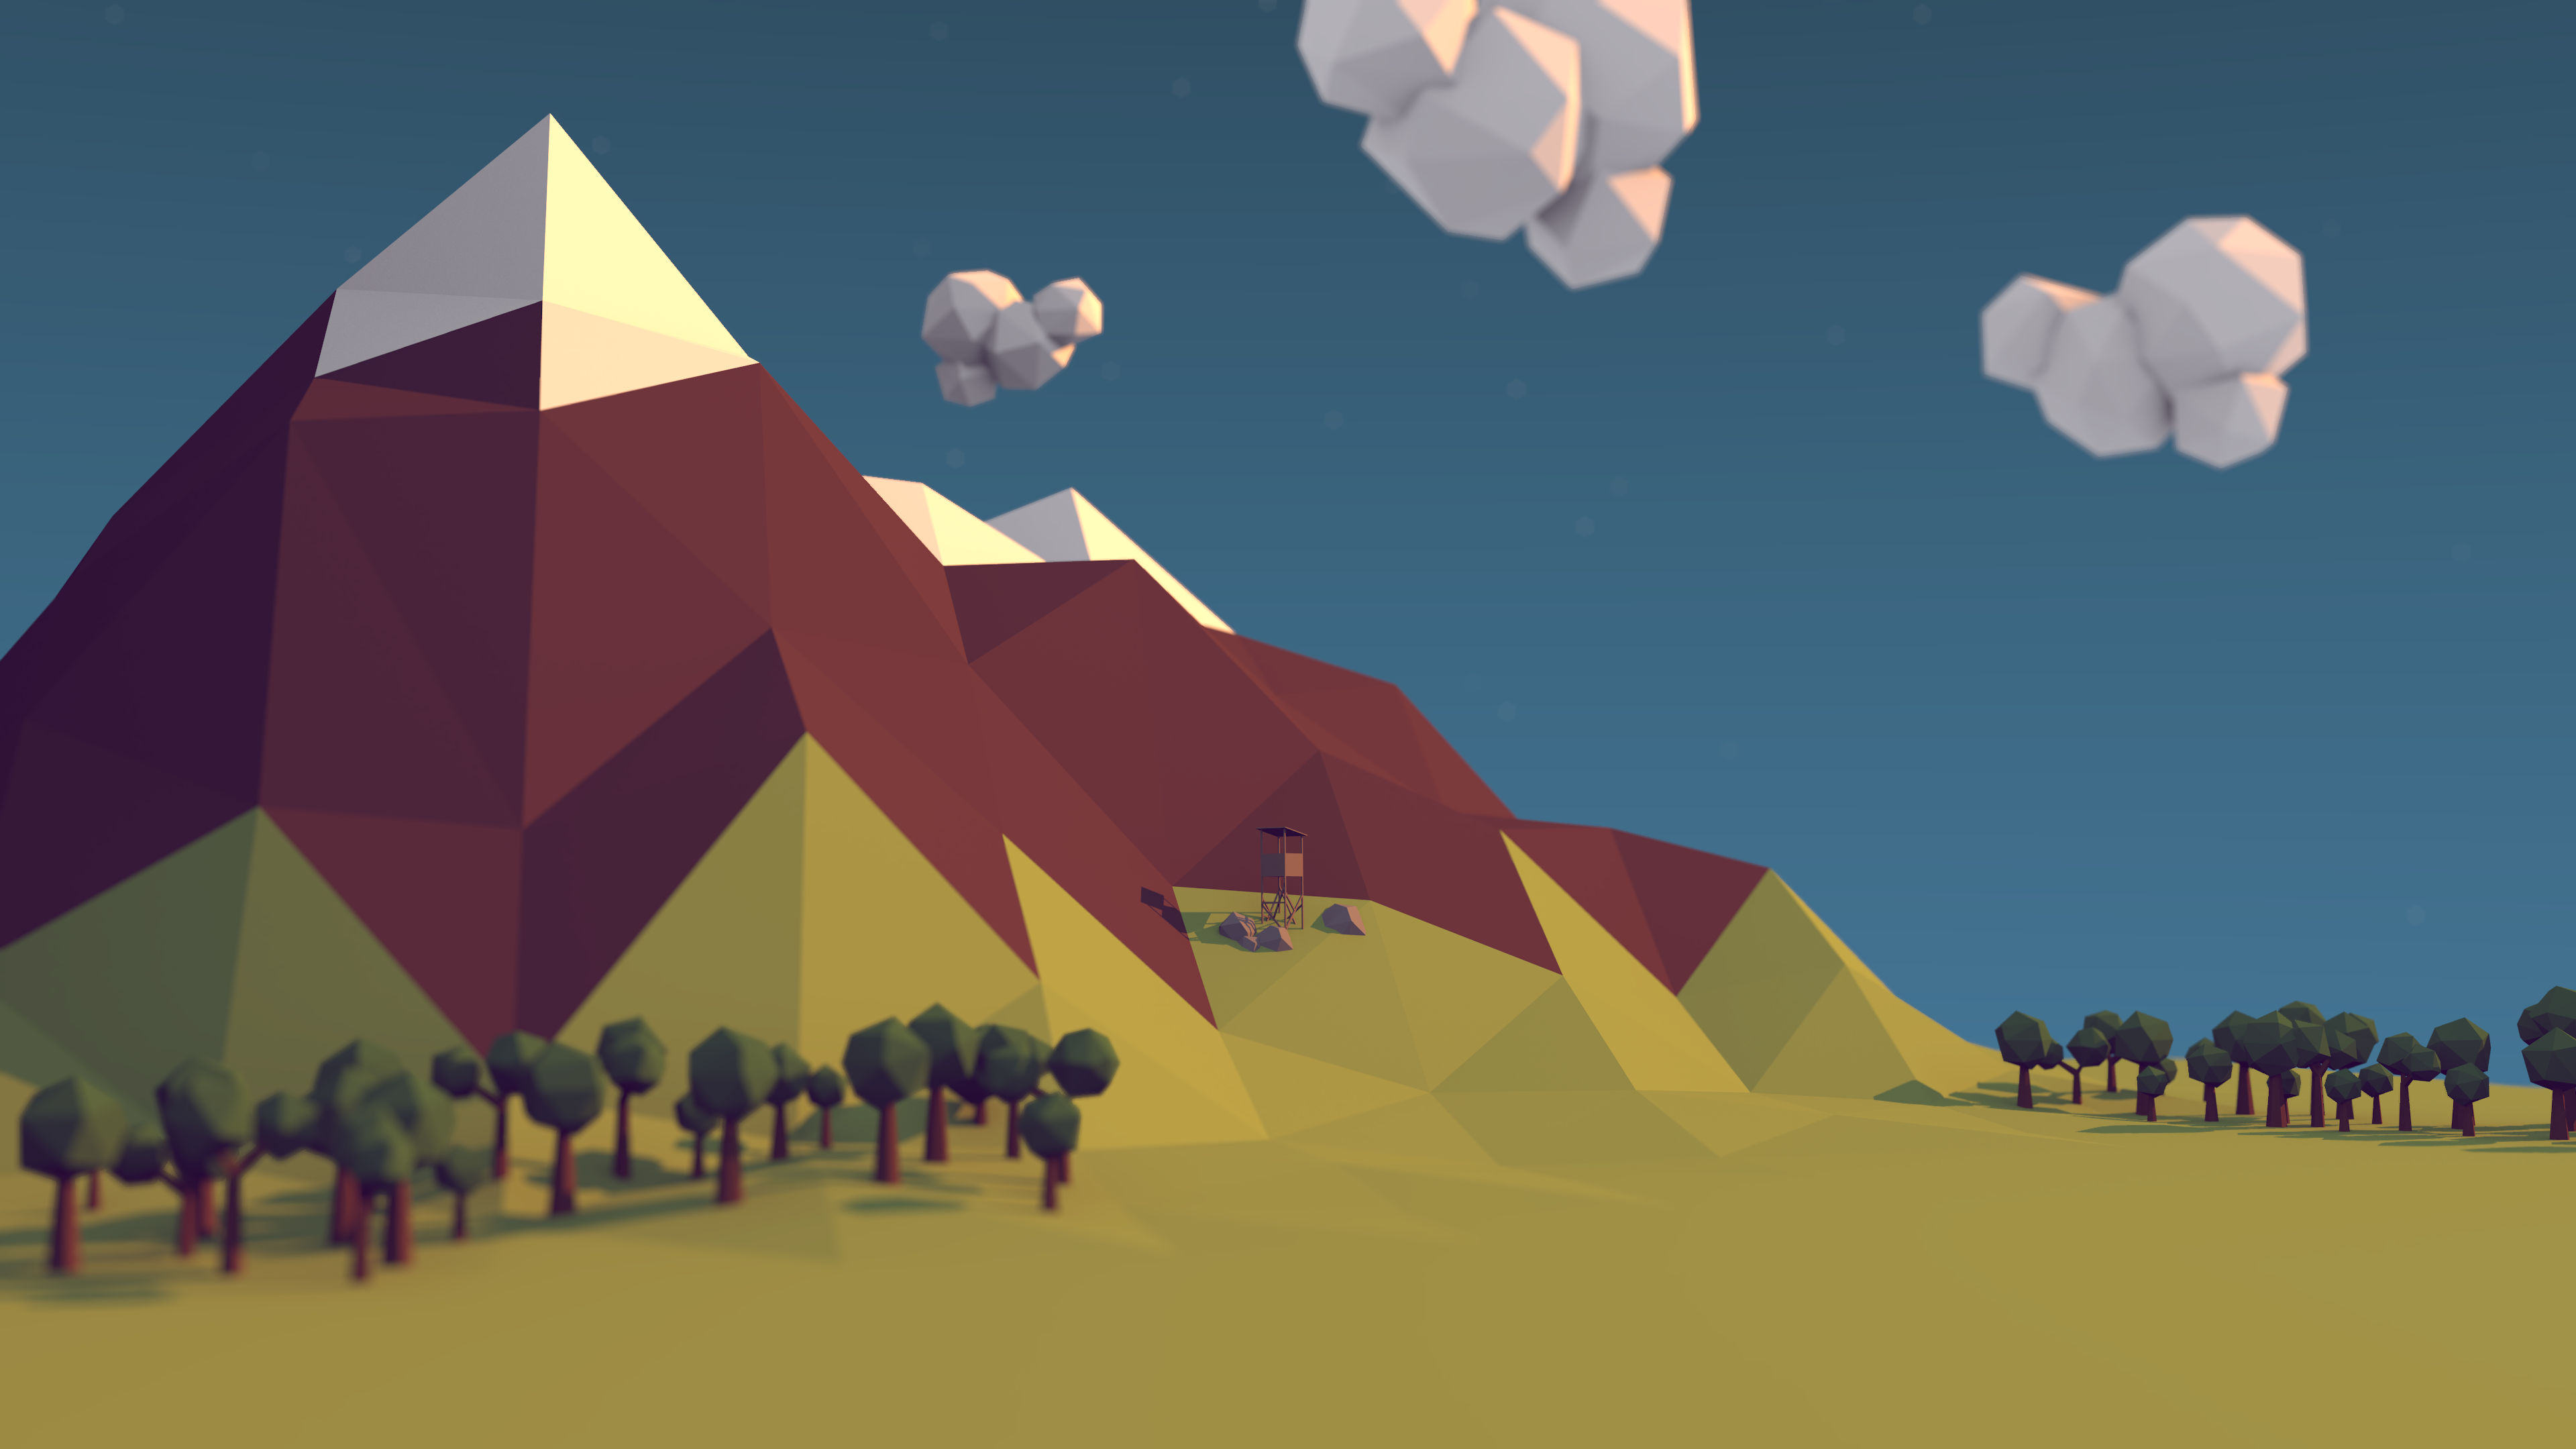 Low Poly Mountain With Watchtower by BenneyBoy444 Low Poly Mountain With Watchtower by BenneyBoy444